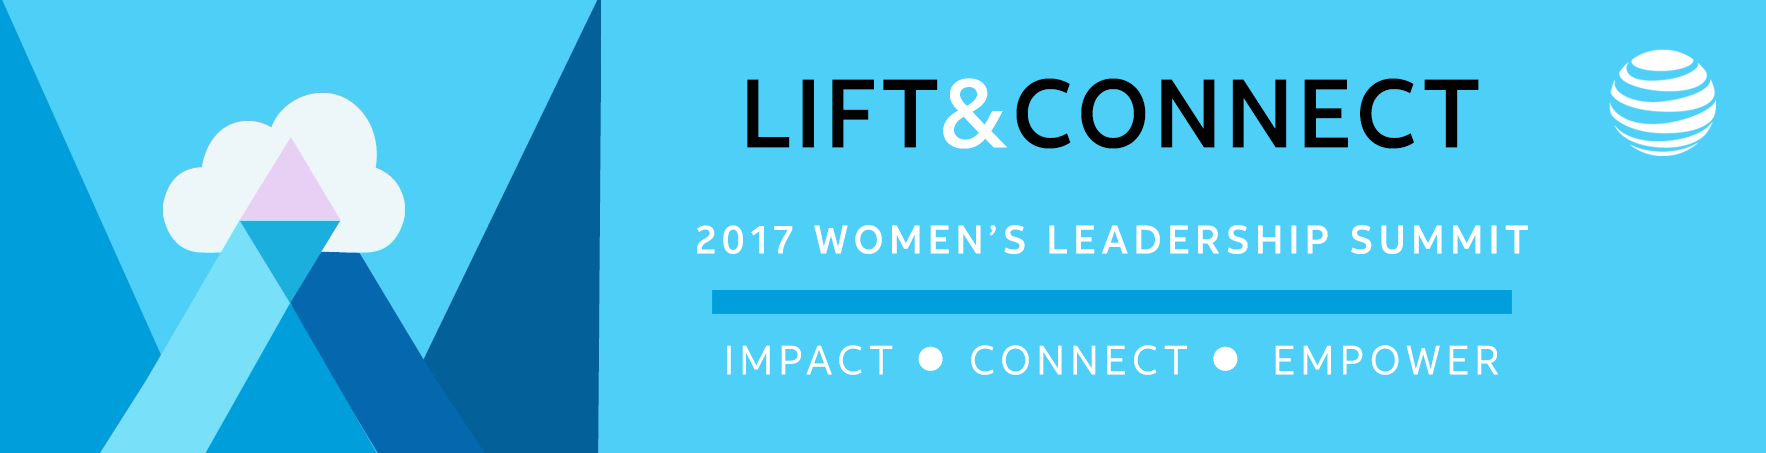 2017 Lift & Connect Women's Leadership Summit